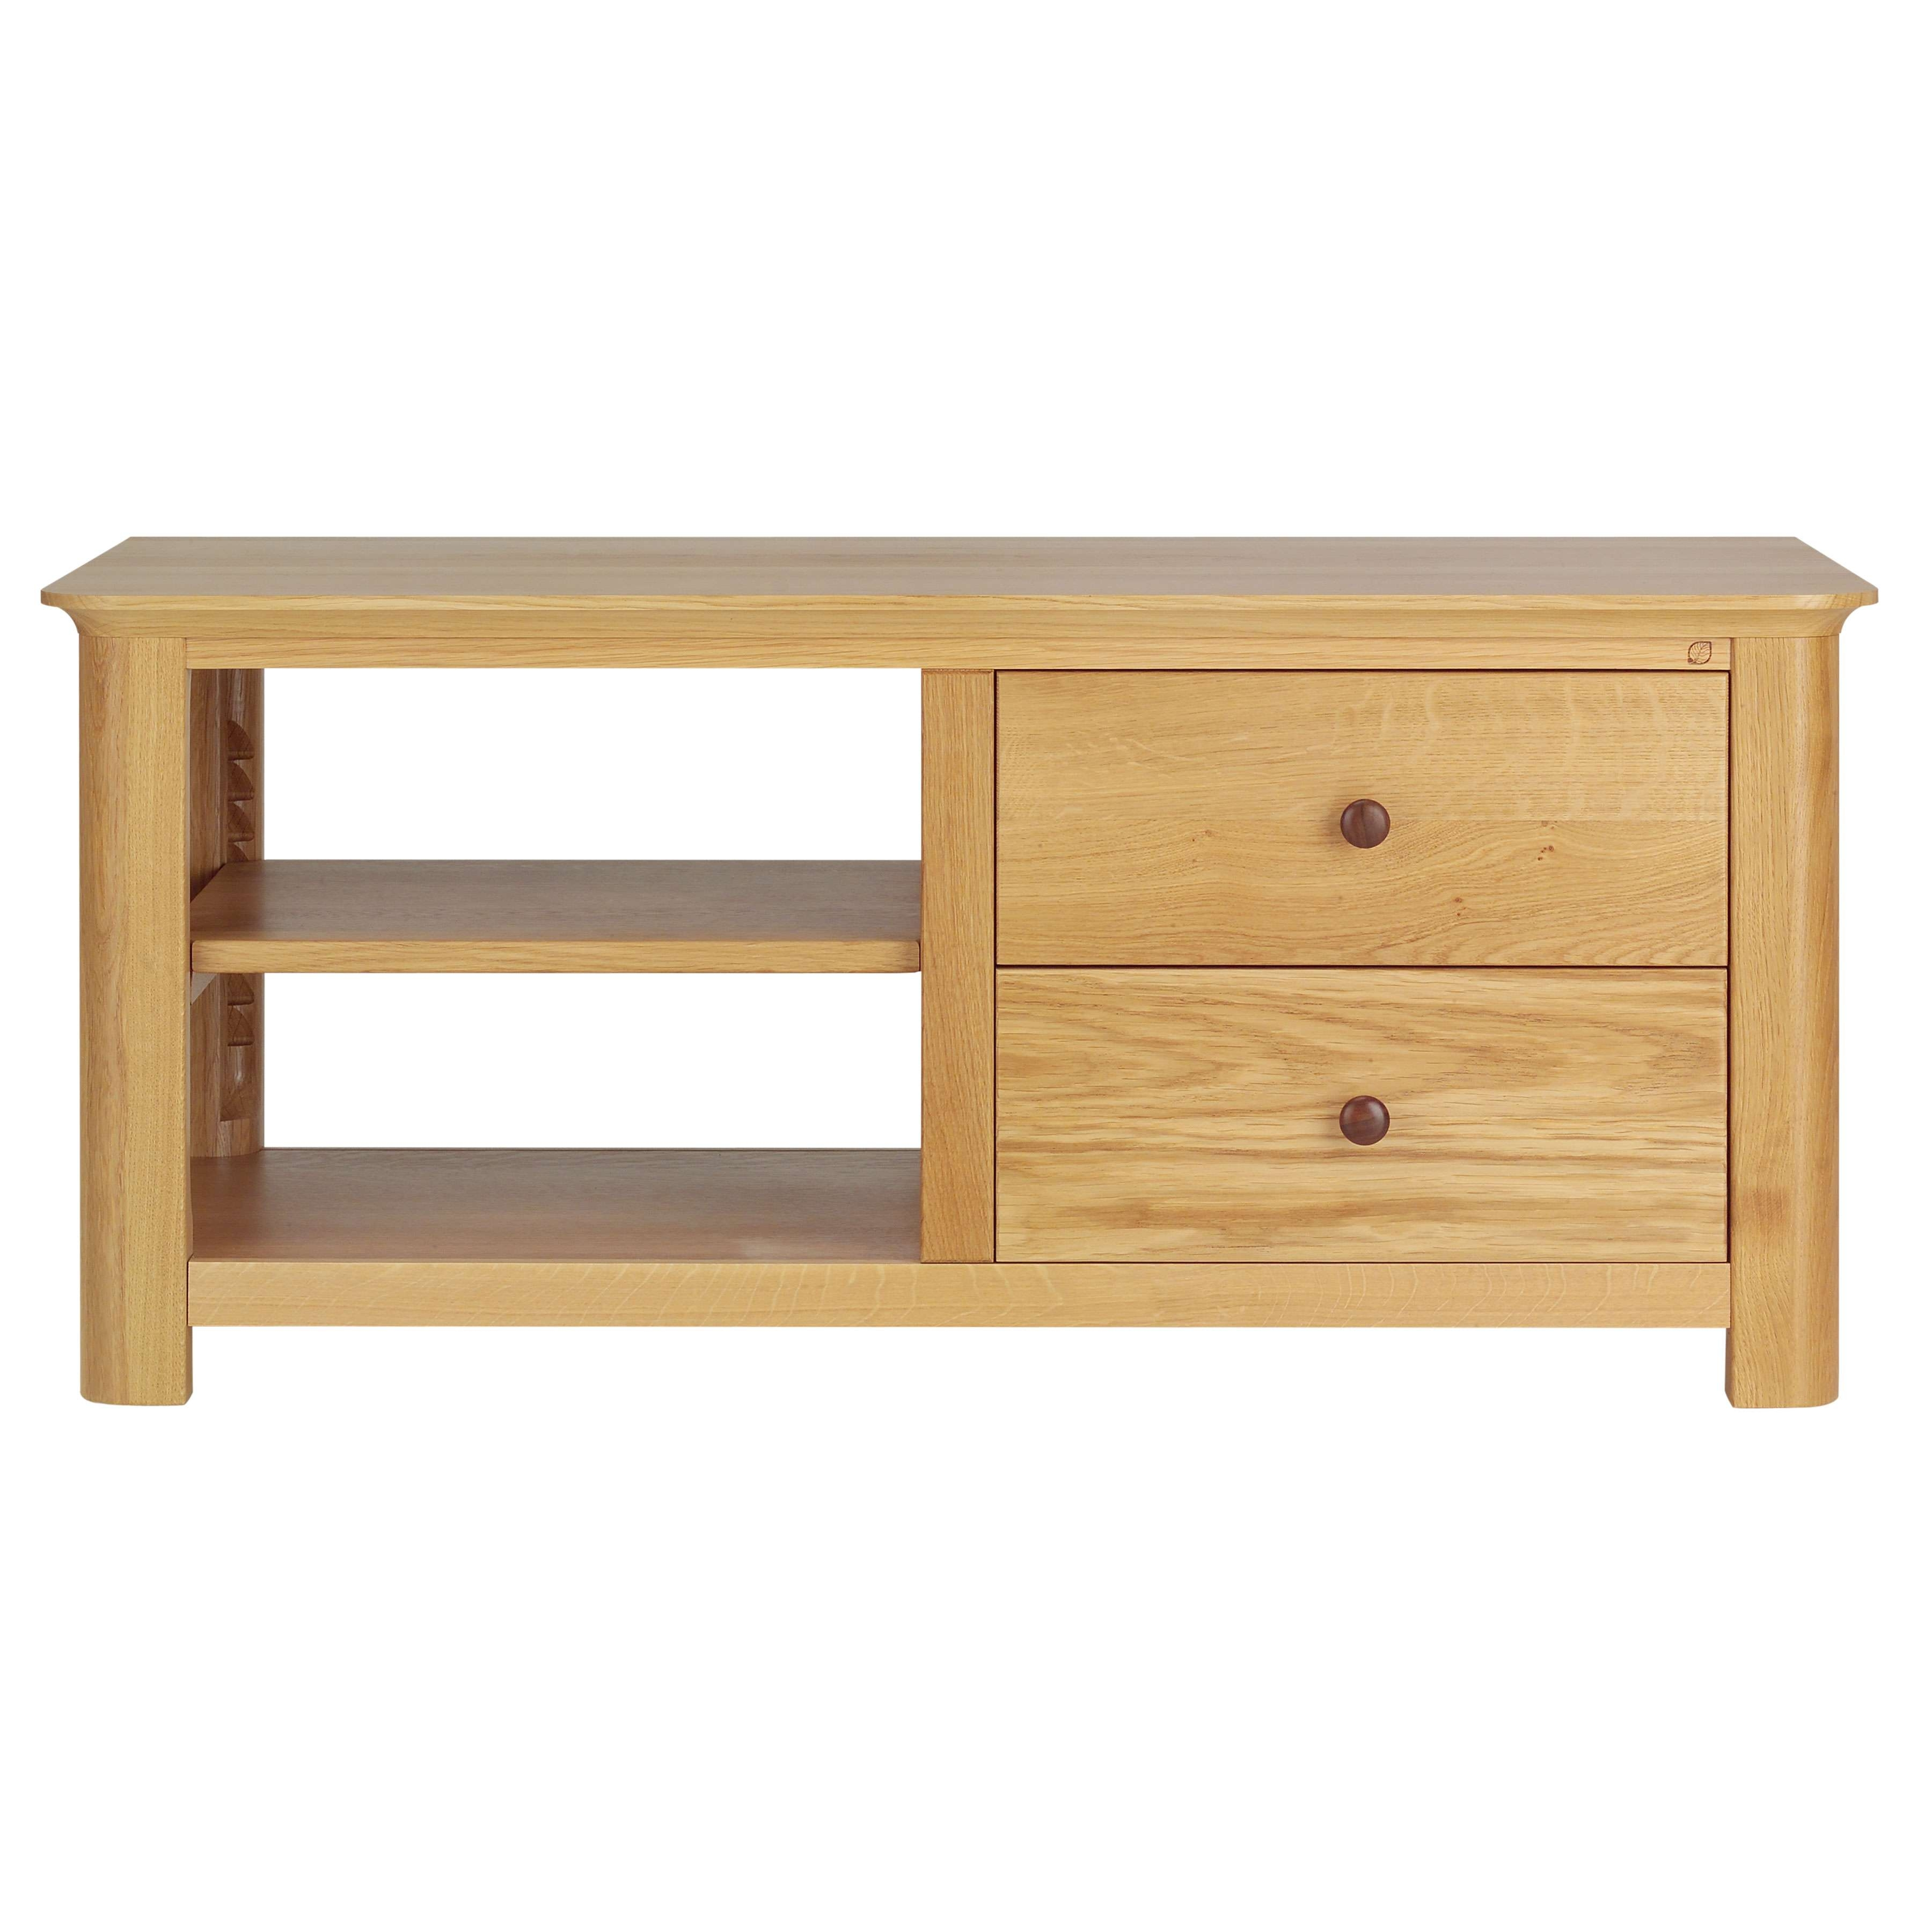 Small Tv Cabinet | Eo Furniture With Small Tv Cabinets (View 8 of 20)